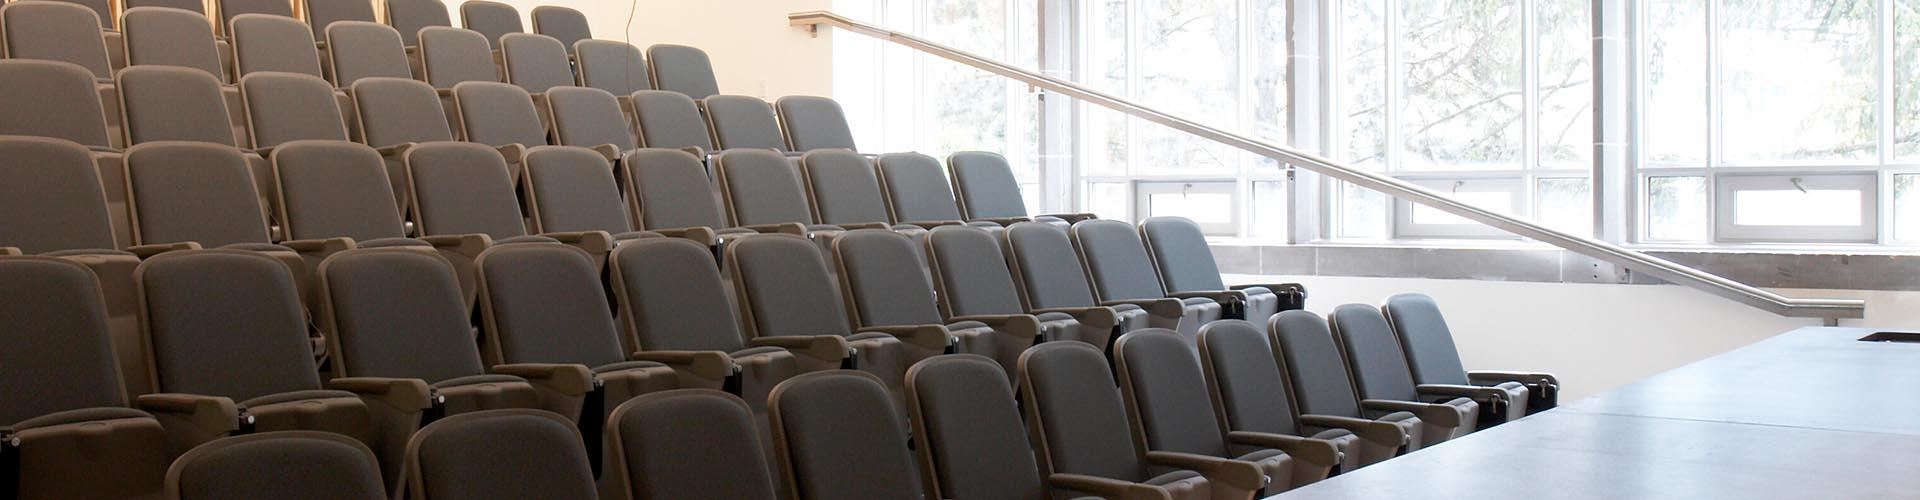 Image of classroom in Hamilton Hall with rows of chairs